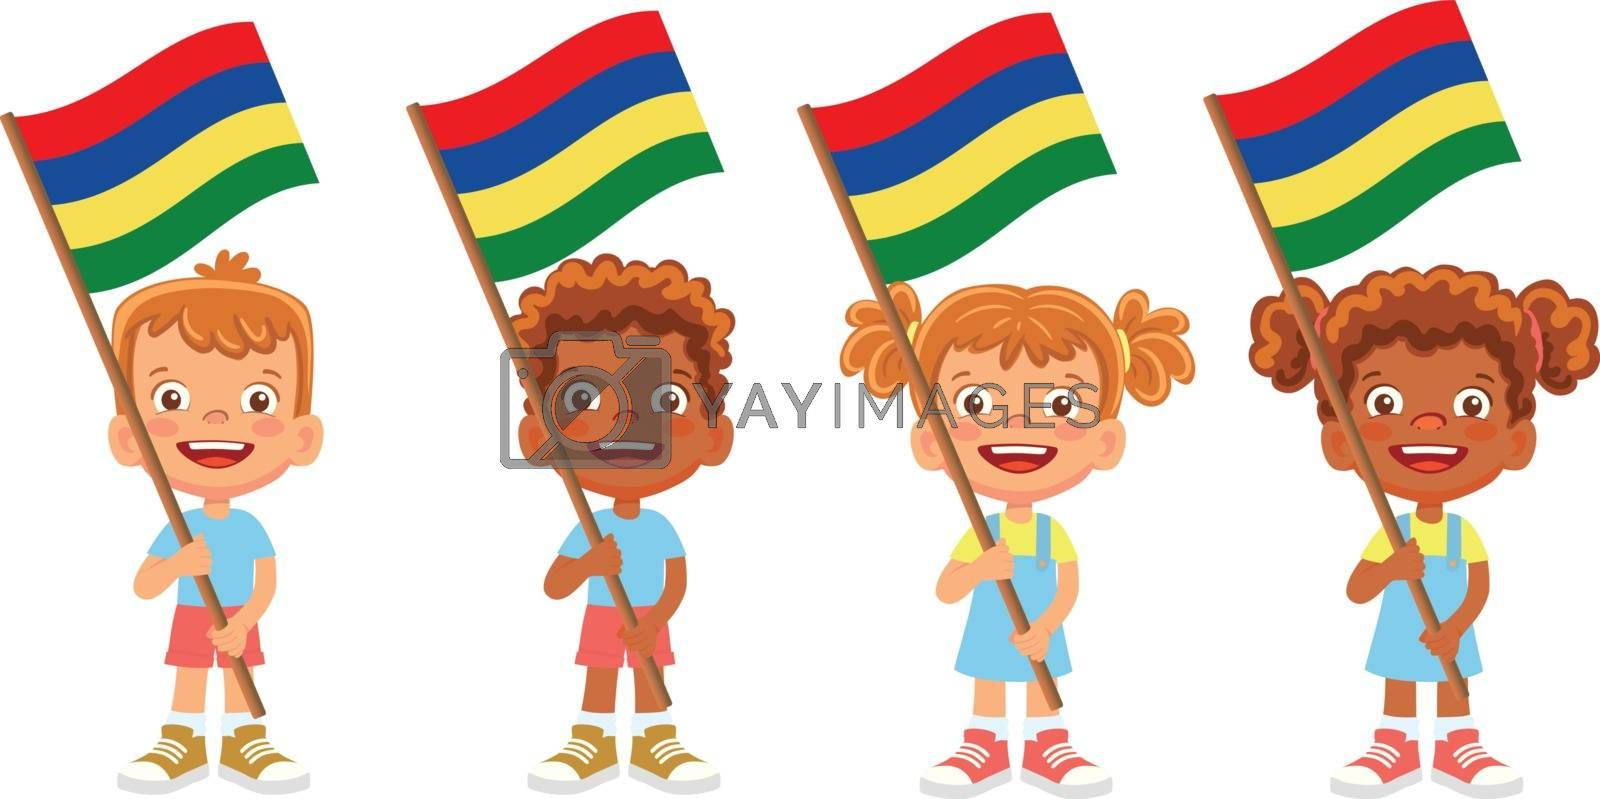 Mauritius flag in hand. Children holding flag. National flag of Mauritius vector